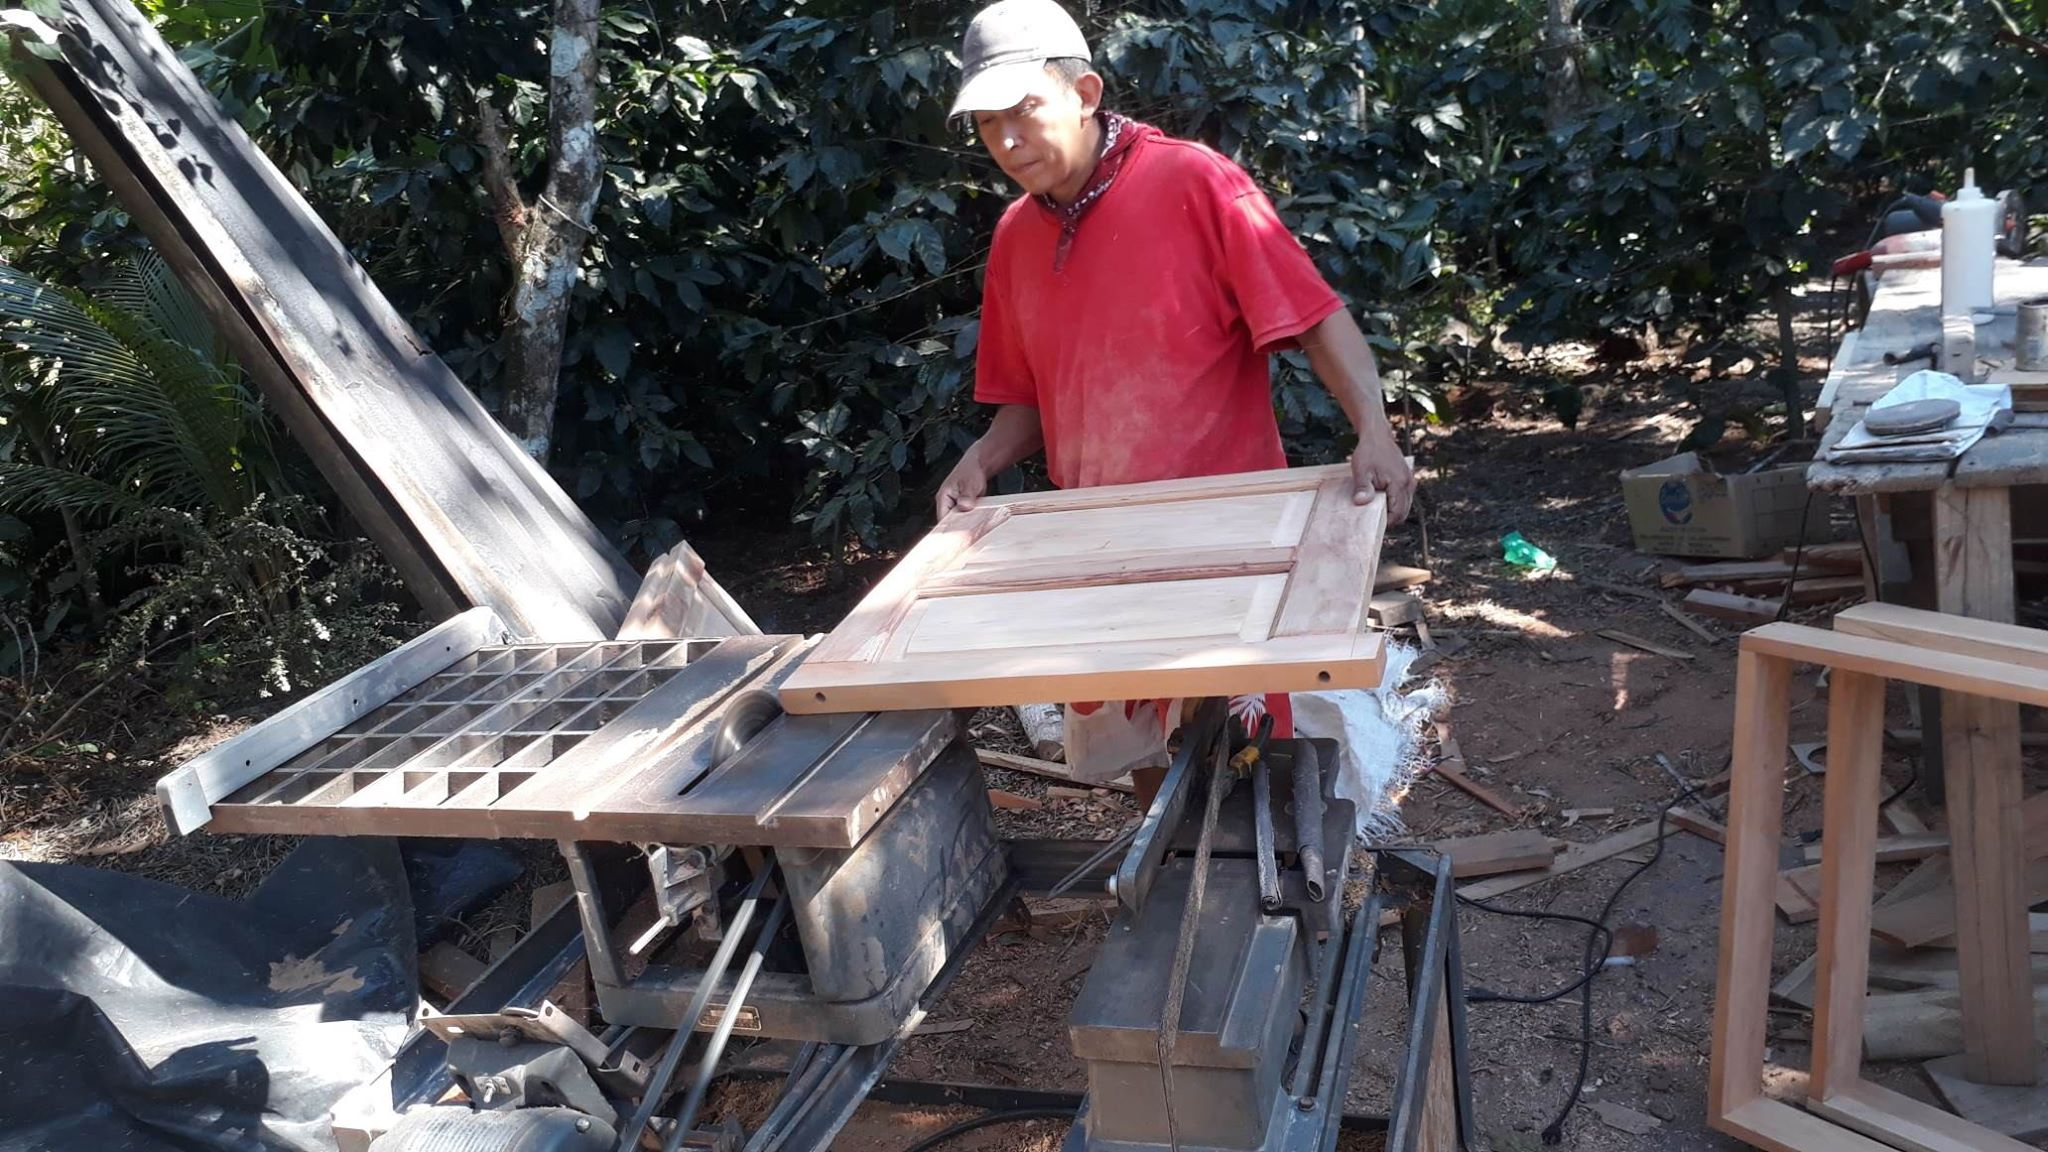 Second Life for a Beehive Making Table Saw